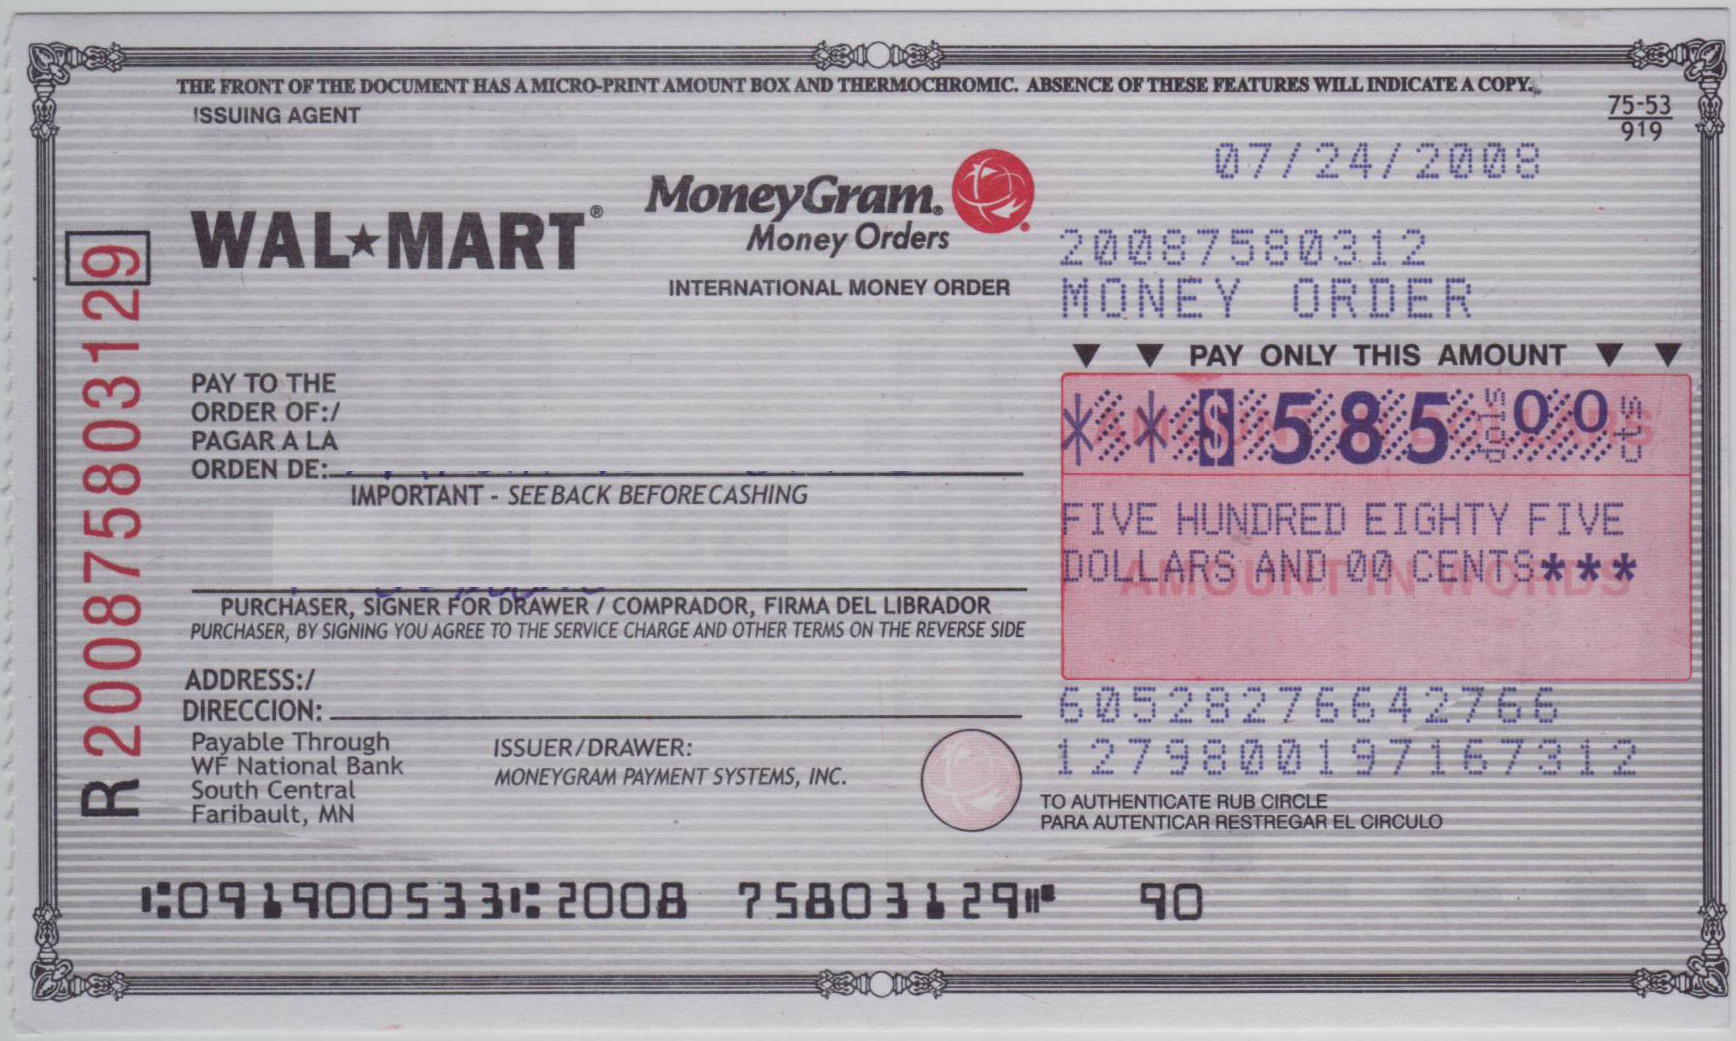 How To Fill Out A Moneygram Money Order